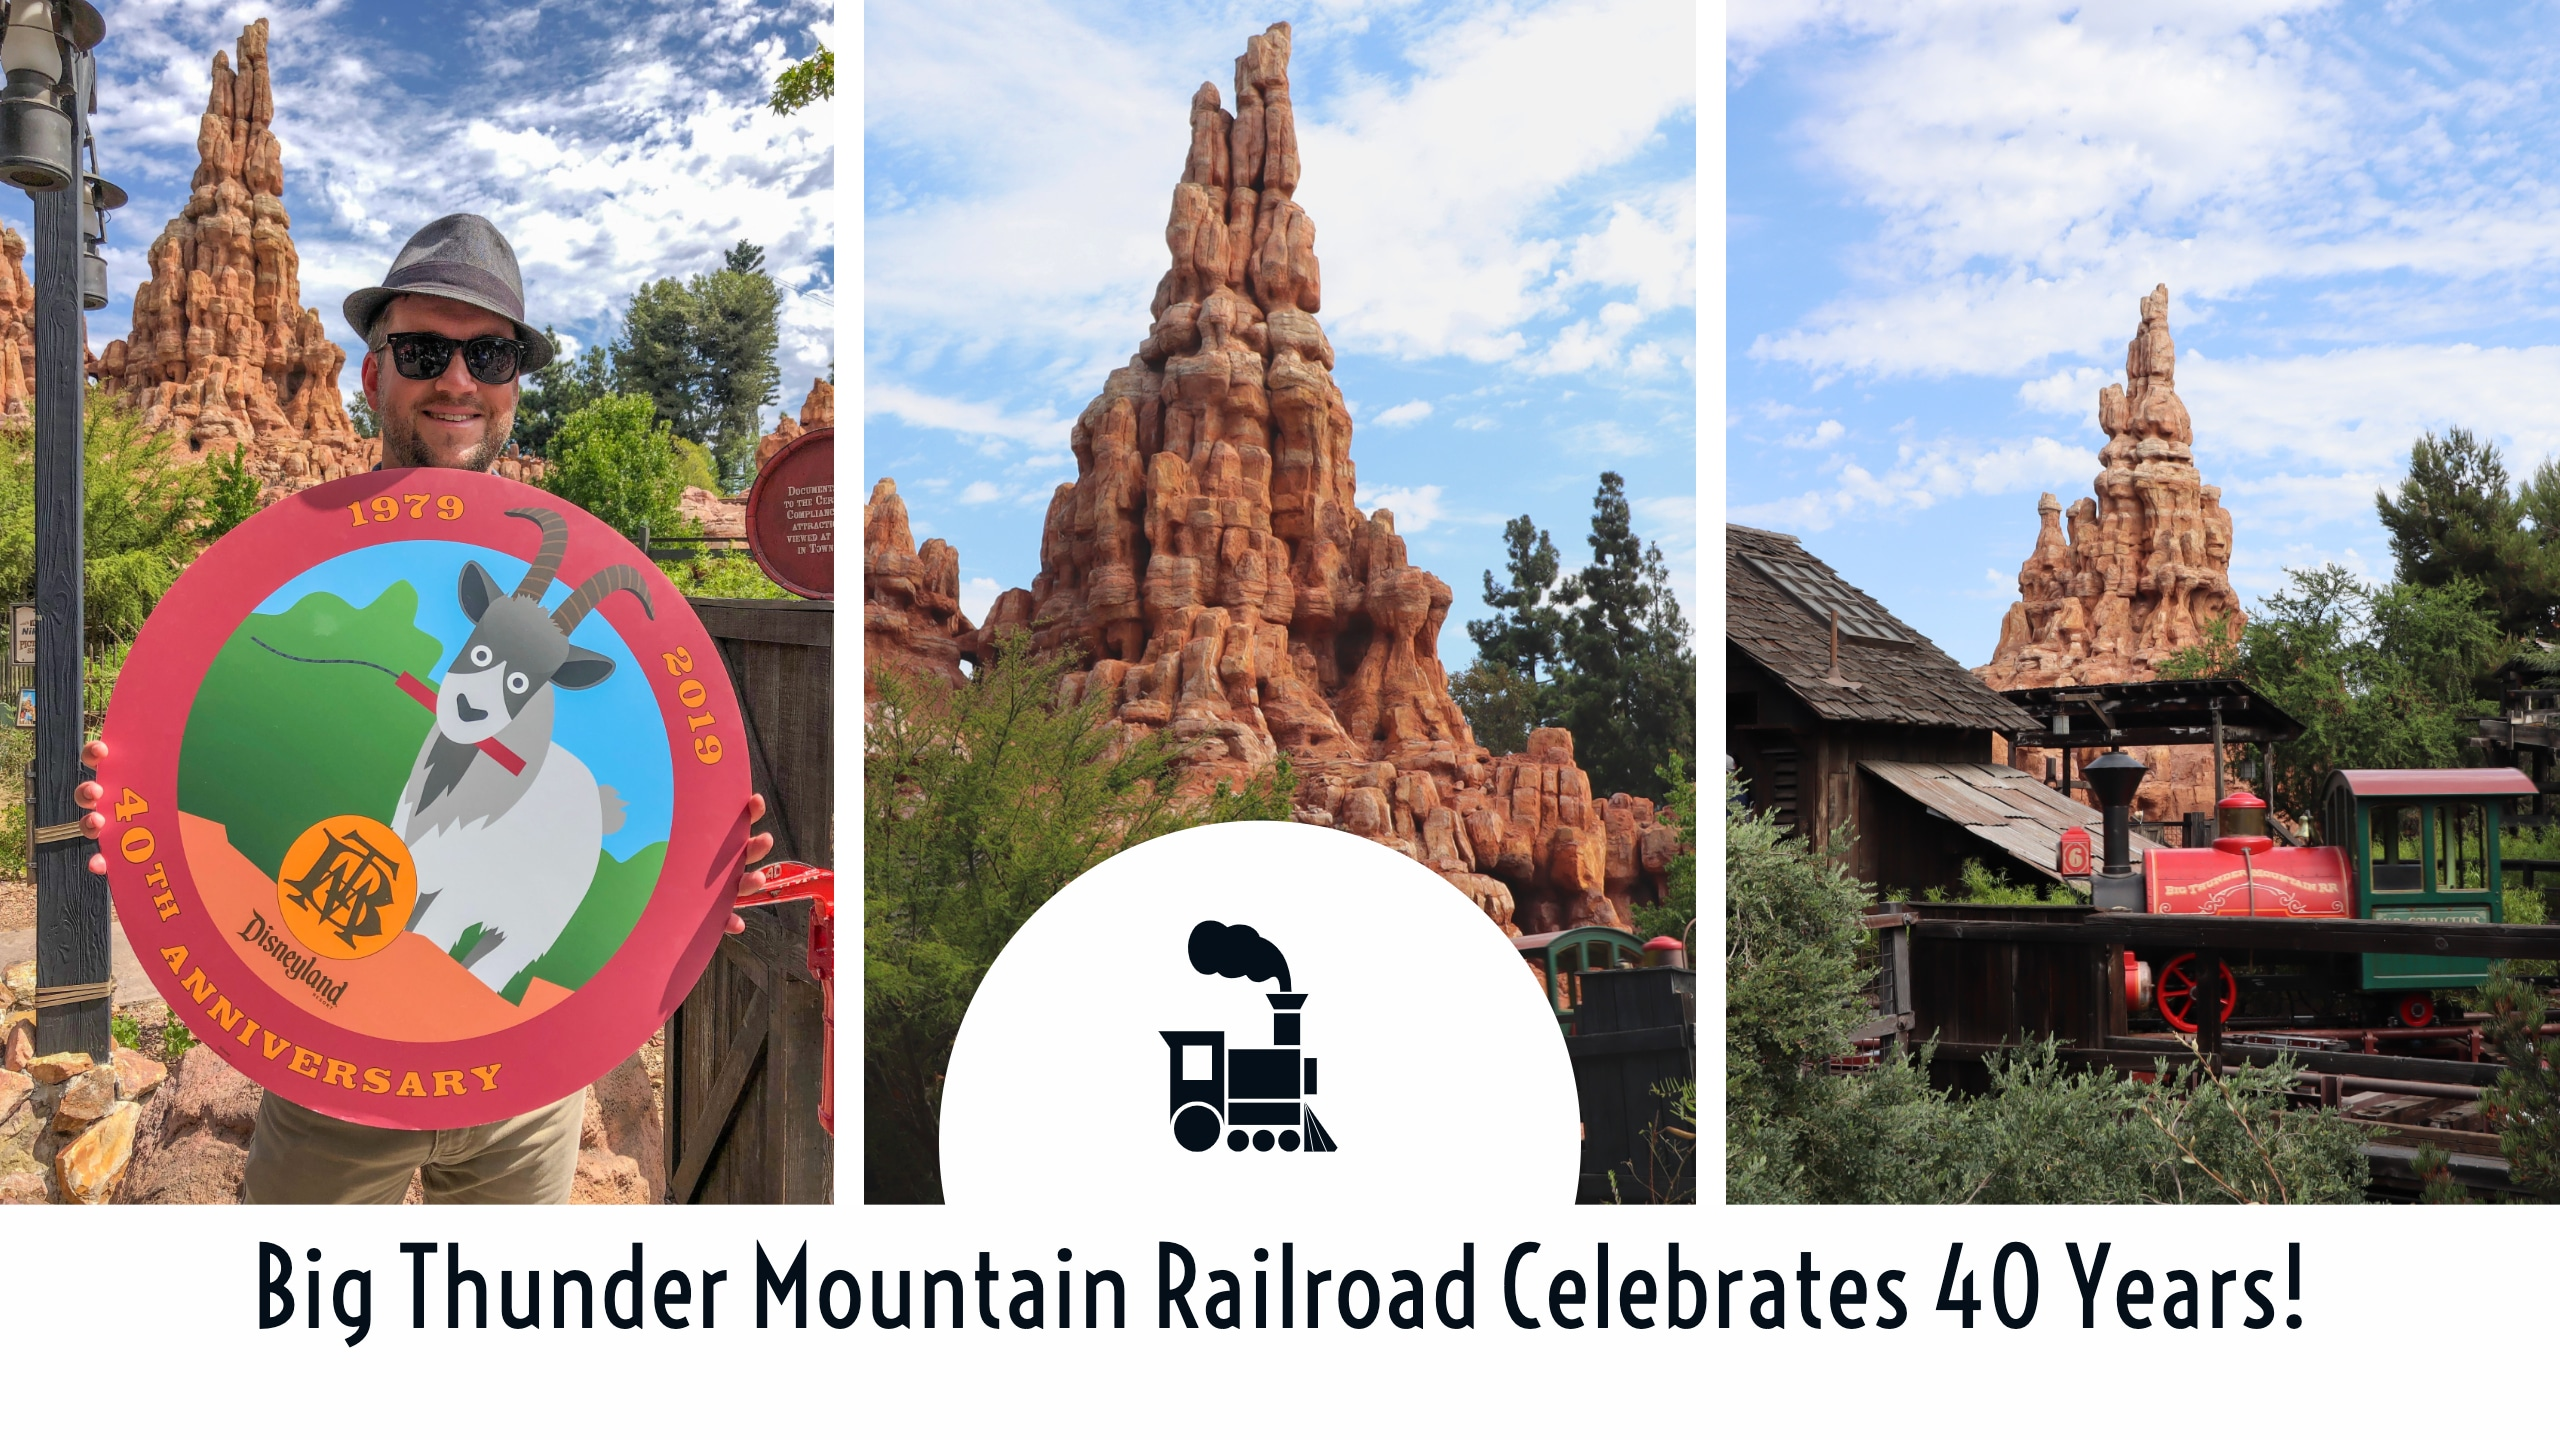 Big Thunder Mountain Railroad Celebrates 40 Years!